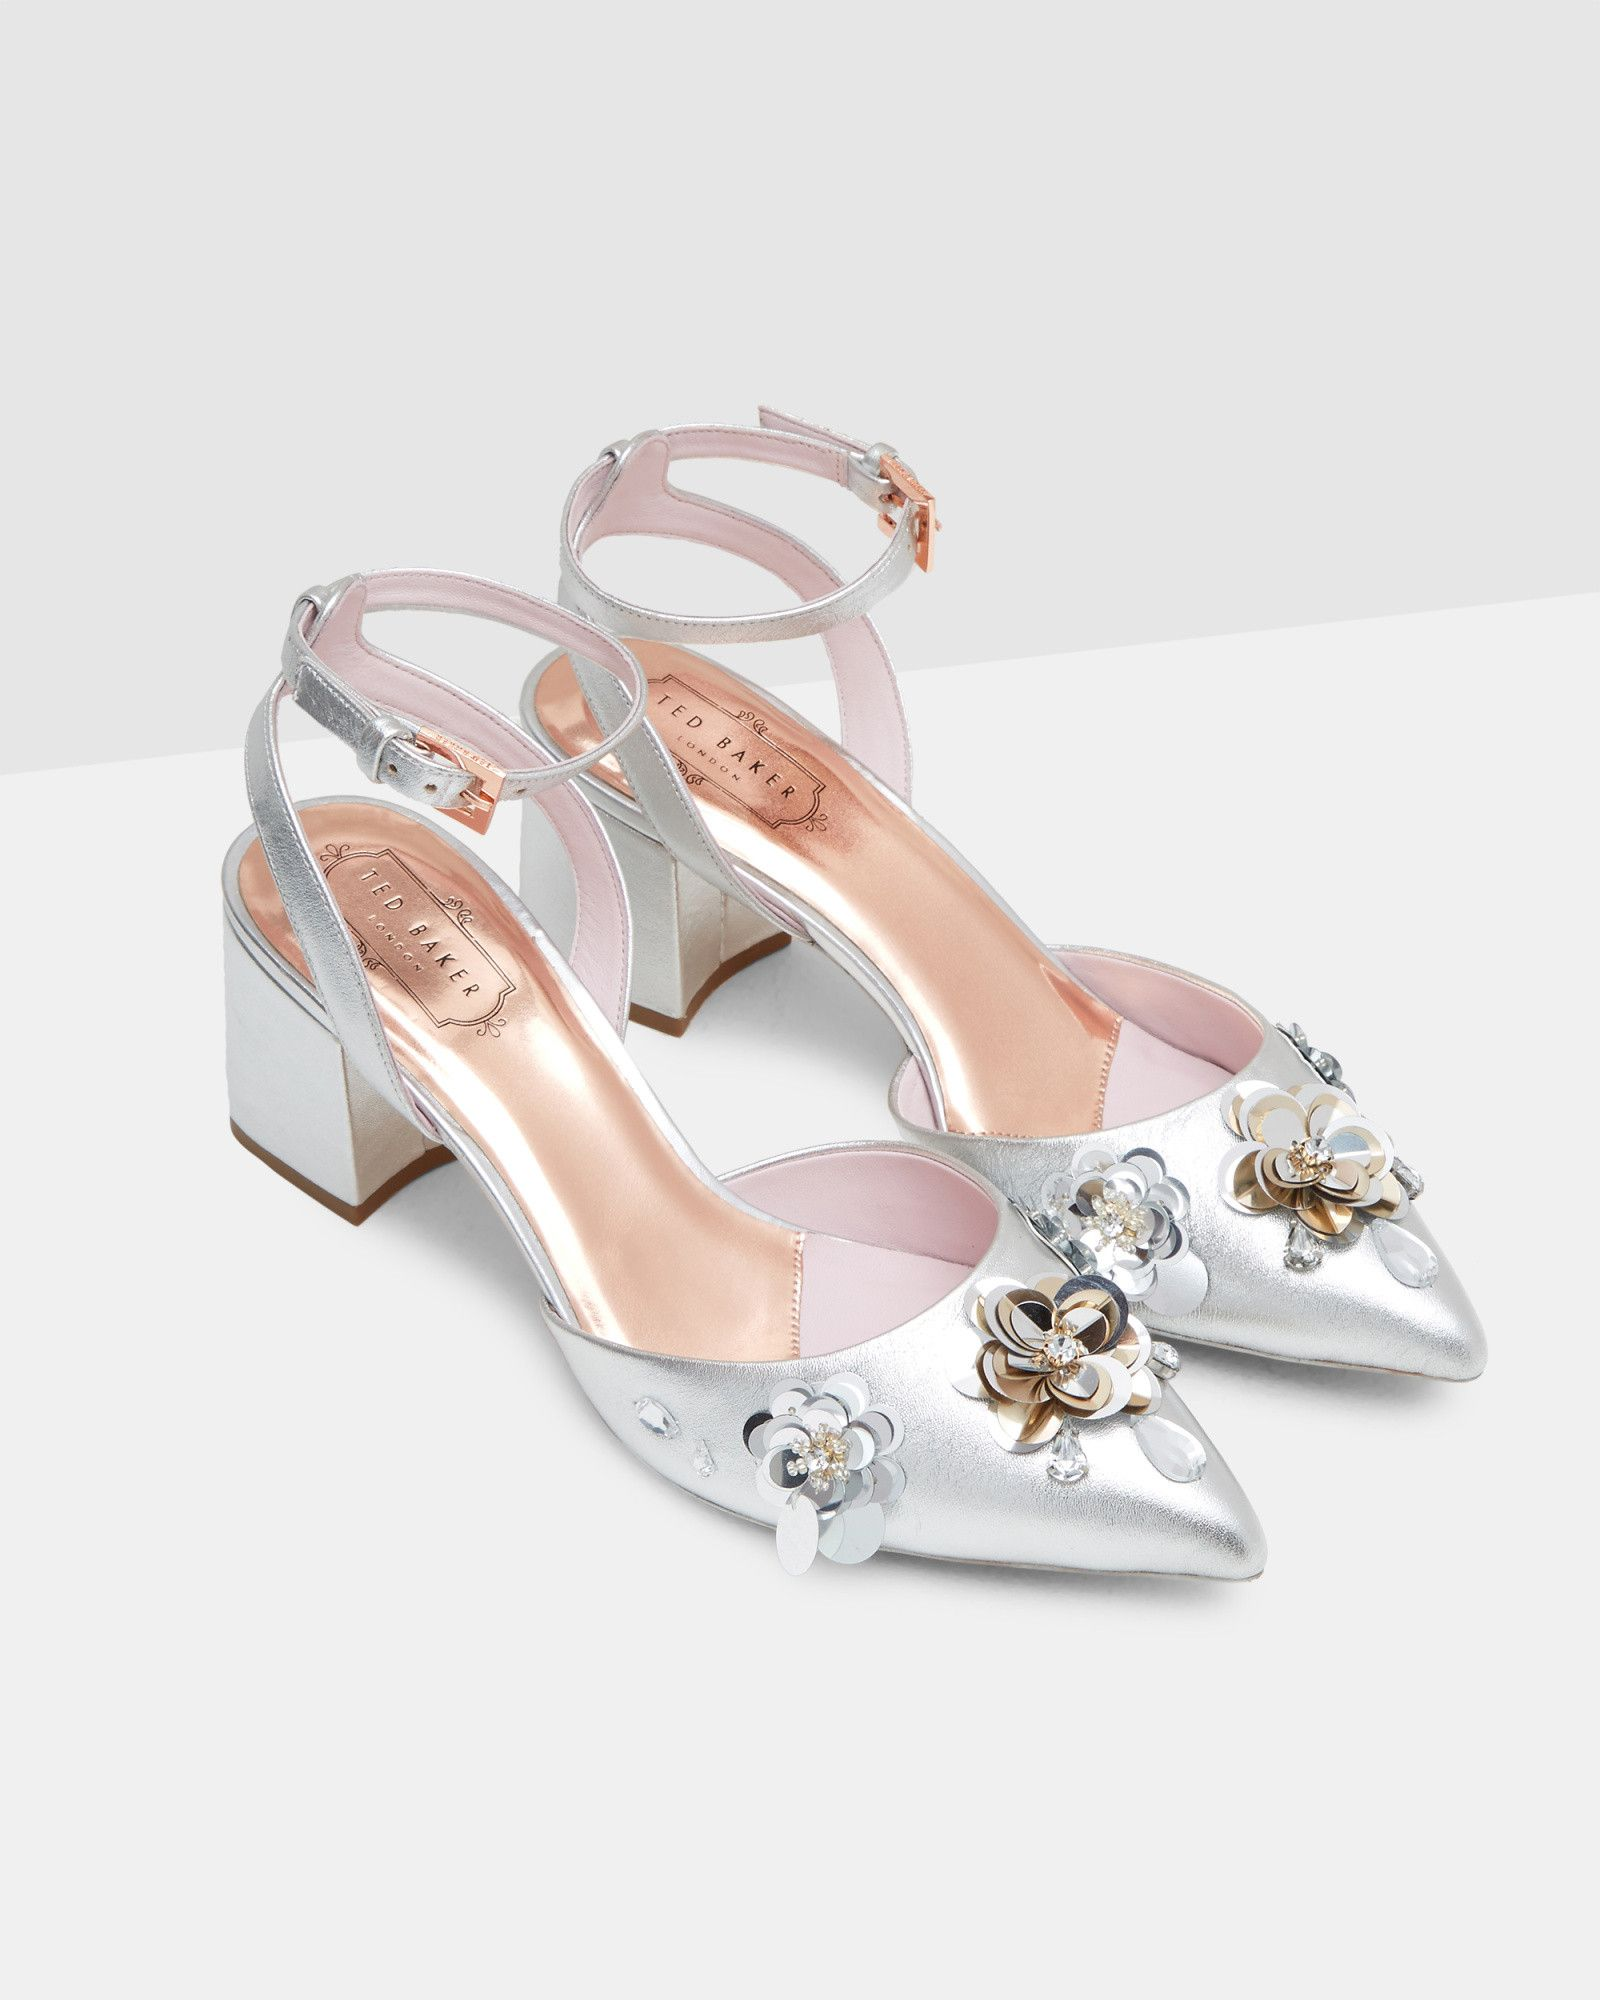 10 Gorgeous Mid Heels For Brides And Bridesmaids Wedding Shoes Silver Wedding Shoes Embellished Leather Sandals